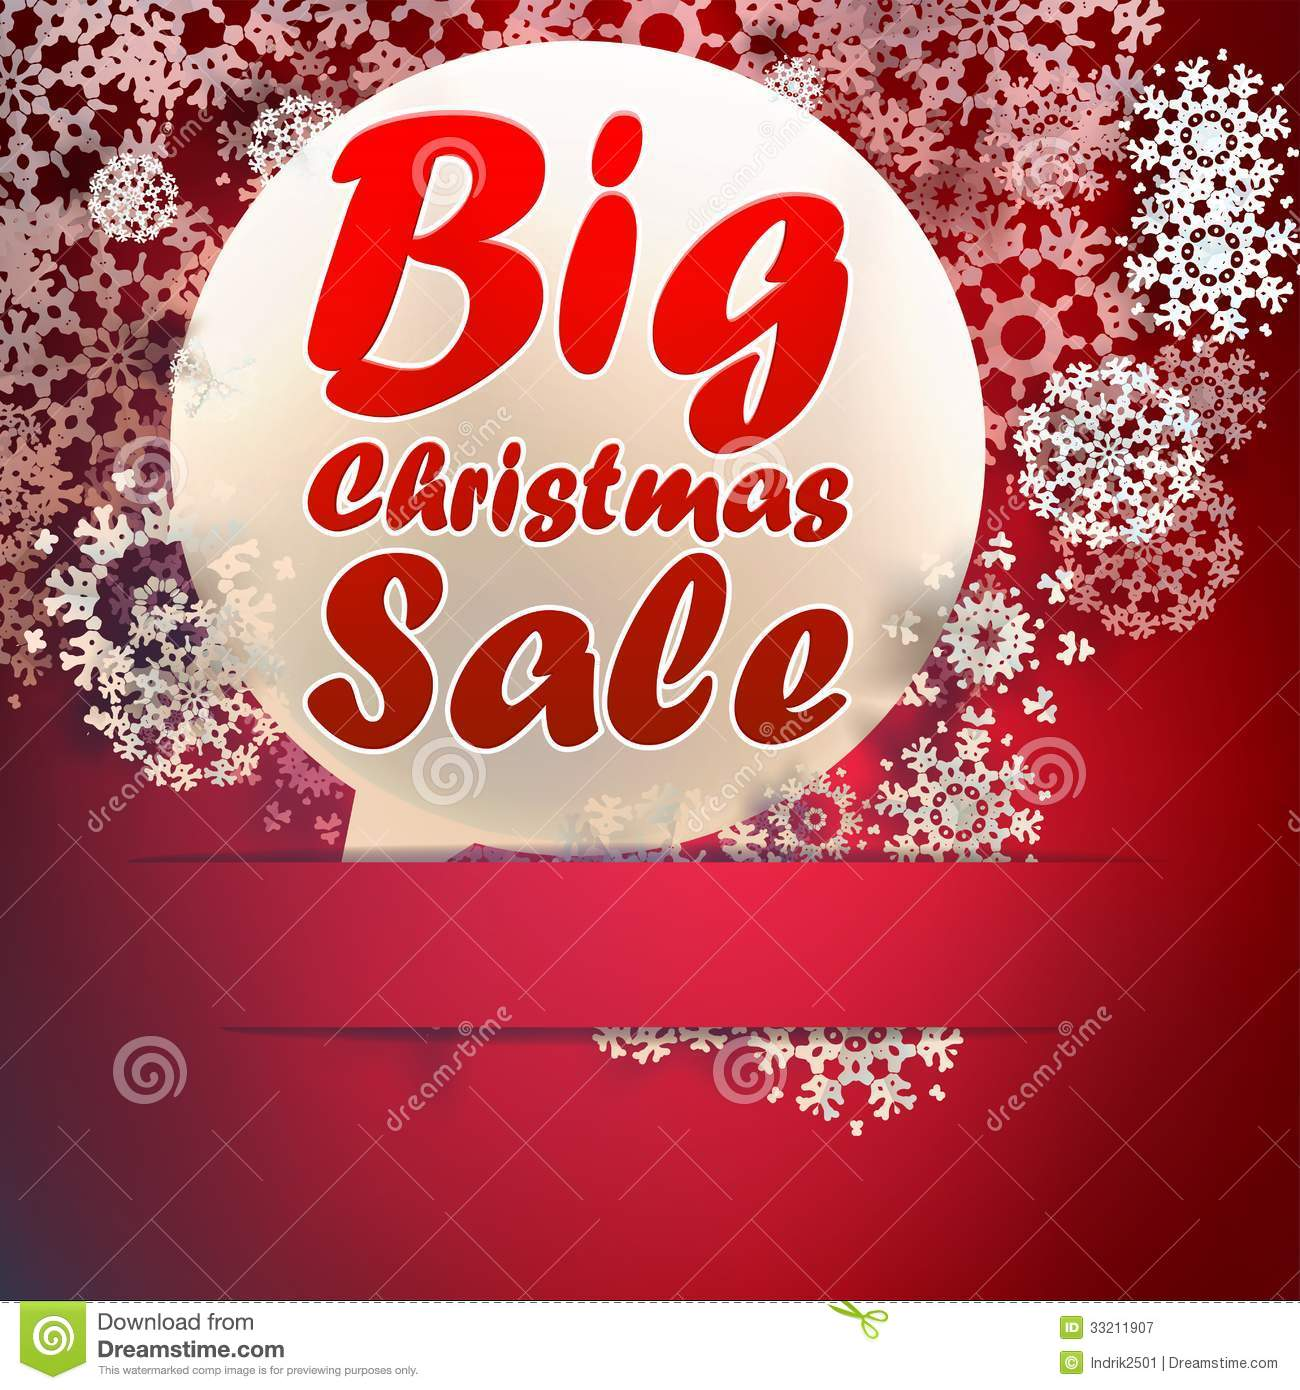 Christmas Big sale template.